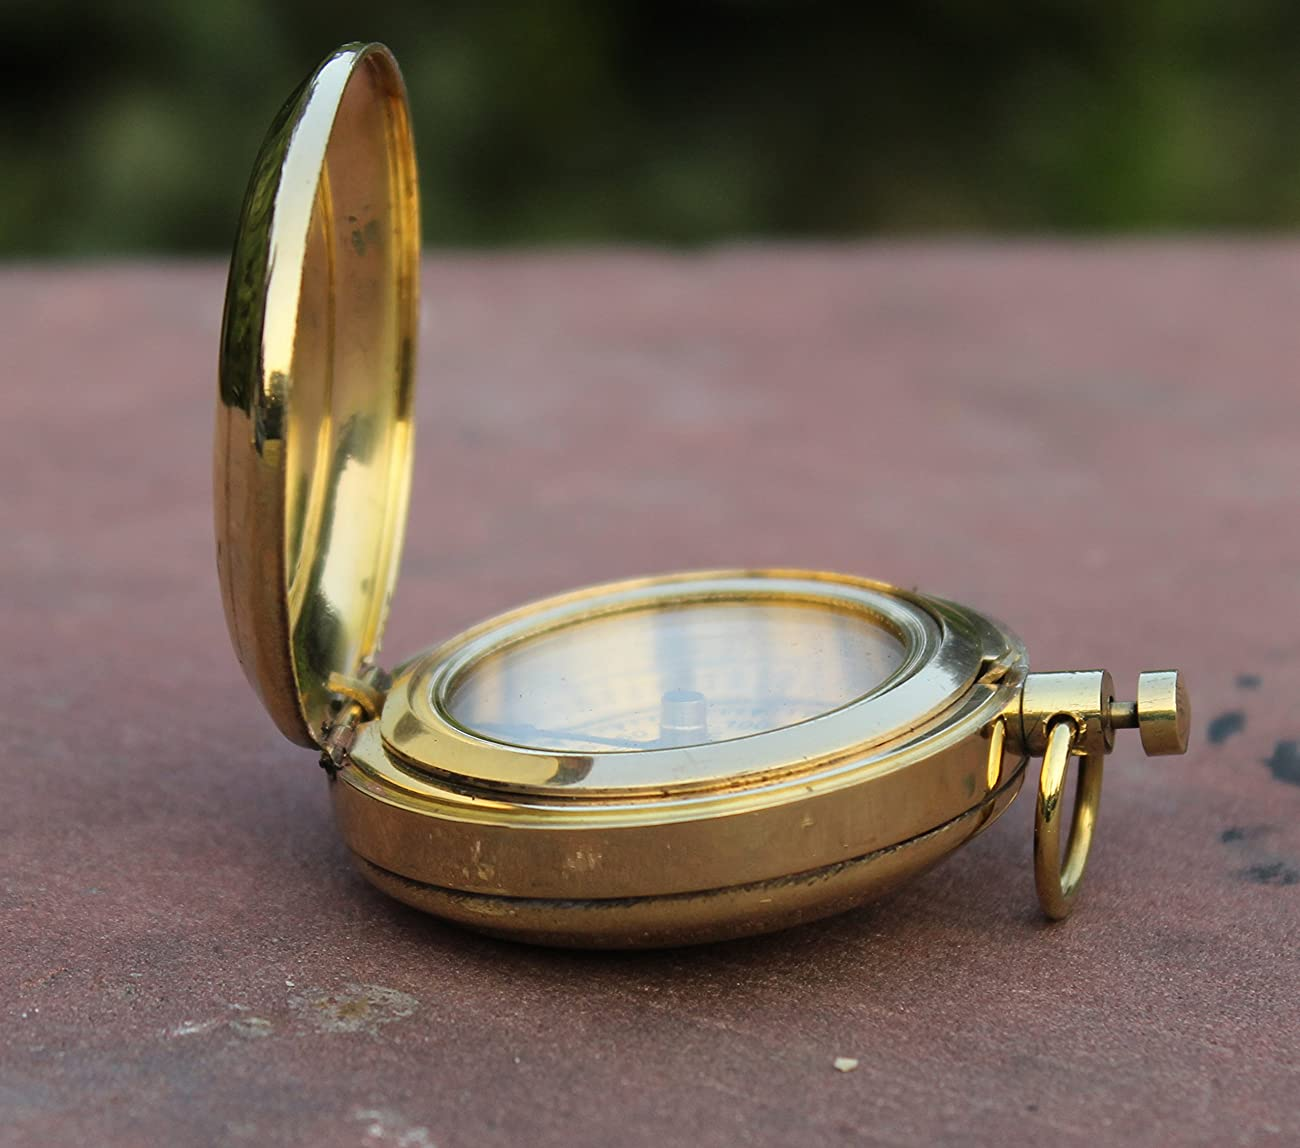 Nautical Collectible Retro Style Compass Decorative Gift Item Brass Finish Compass 3